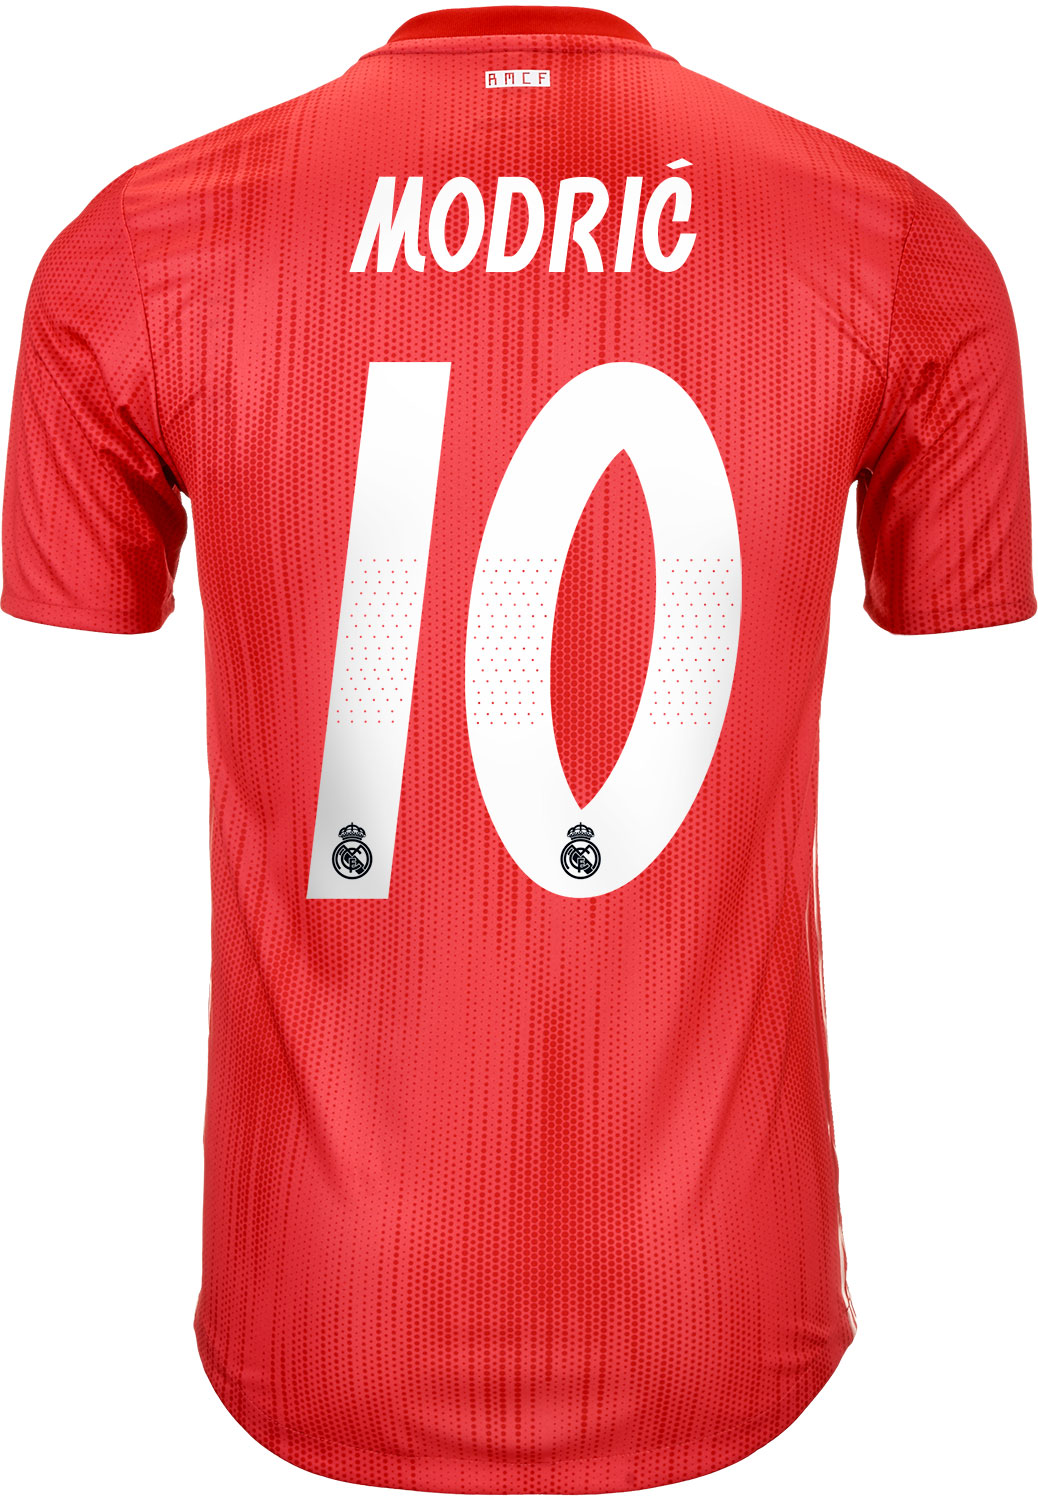 huge selection of 7fc4f e1896 2018/19 adidas Luka Modric Real Madrid Authentic 3rd Jersey ...